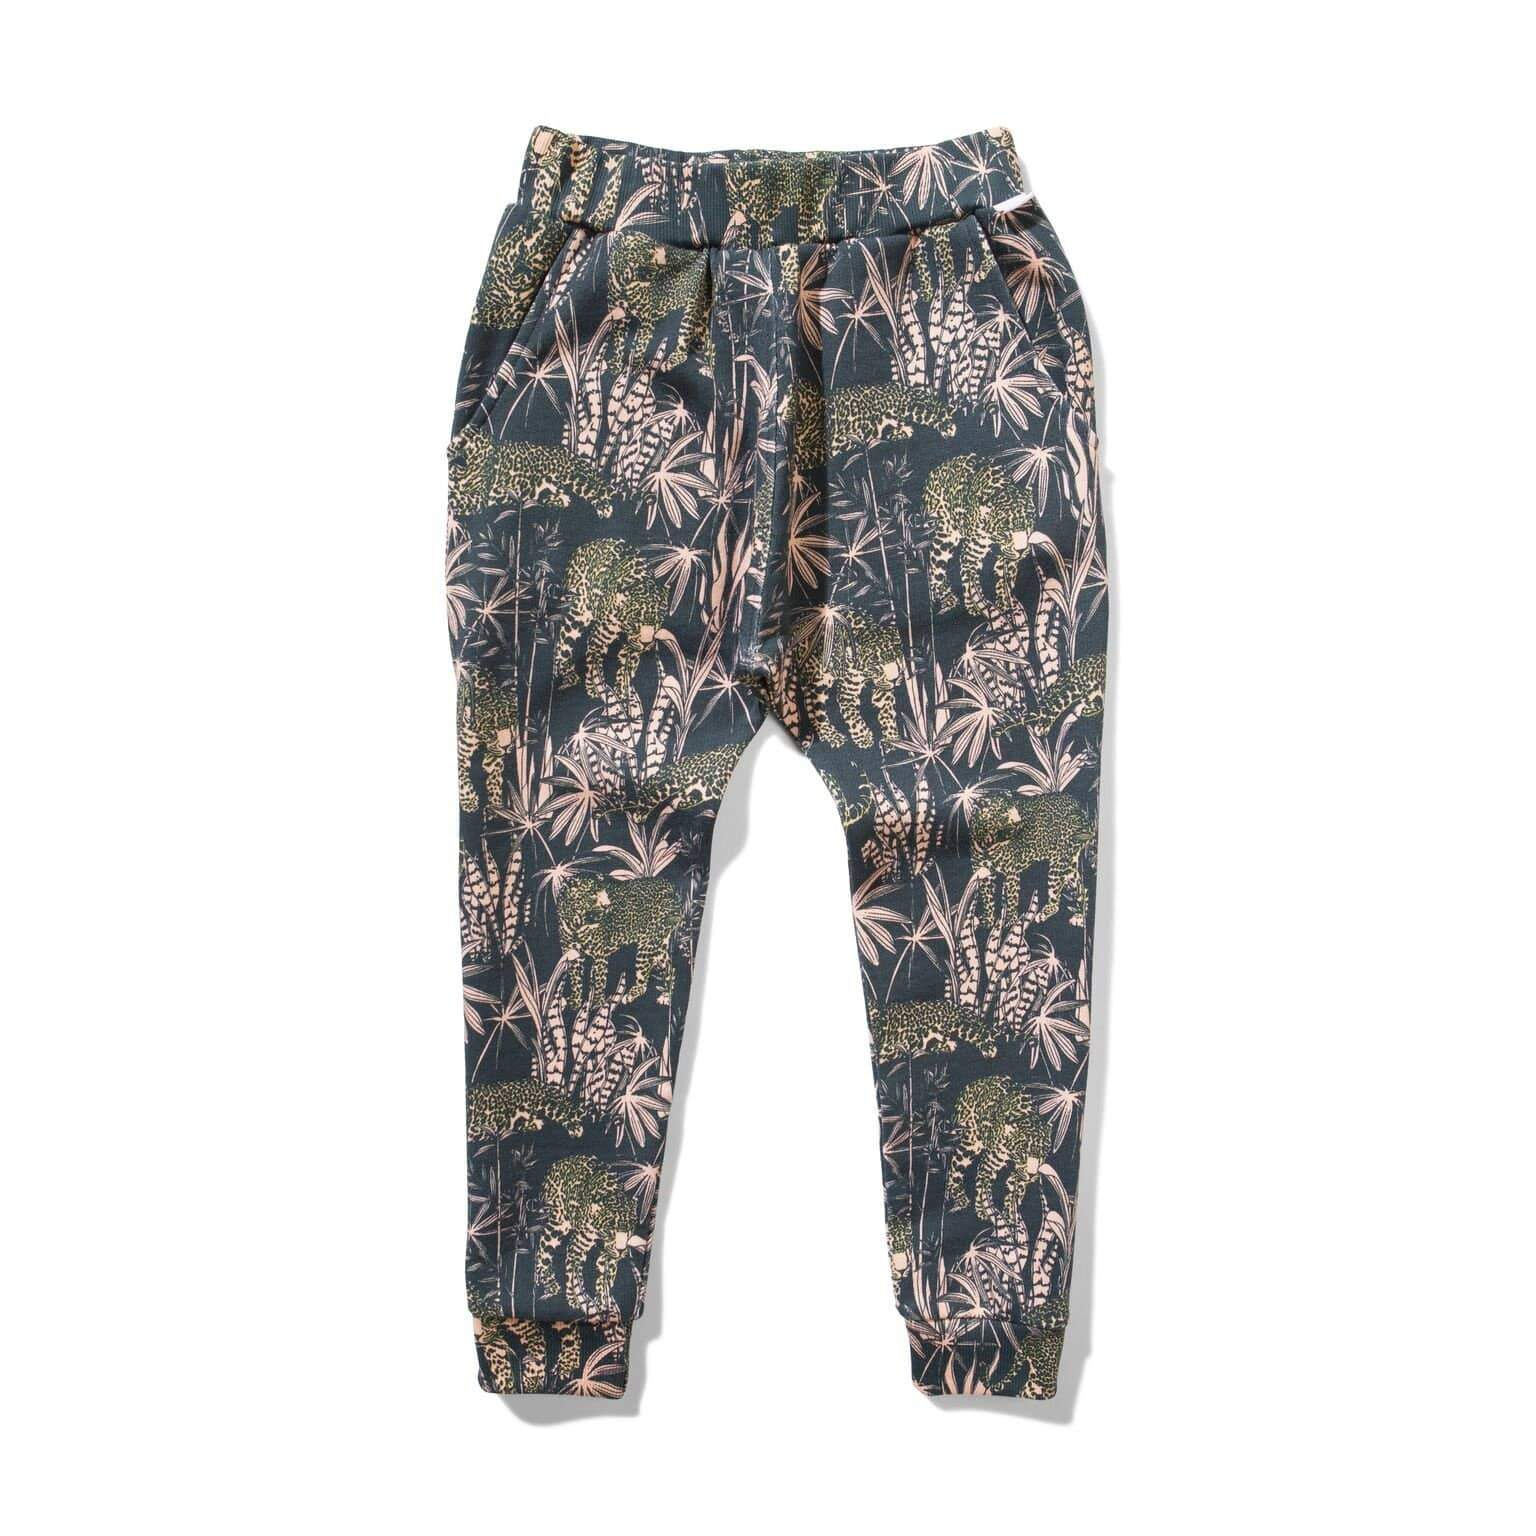 Munster Pants Jungle Pant - In the Jungle